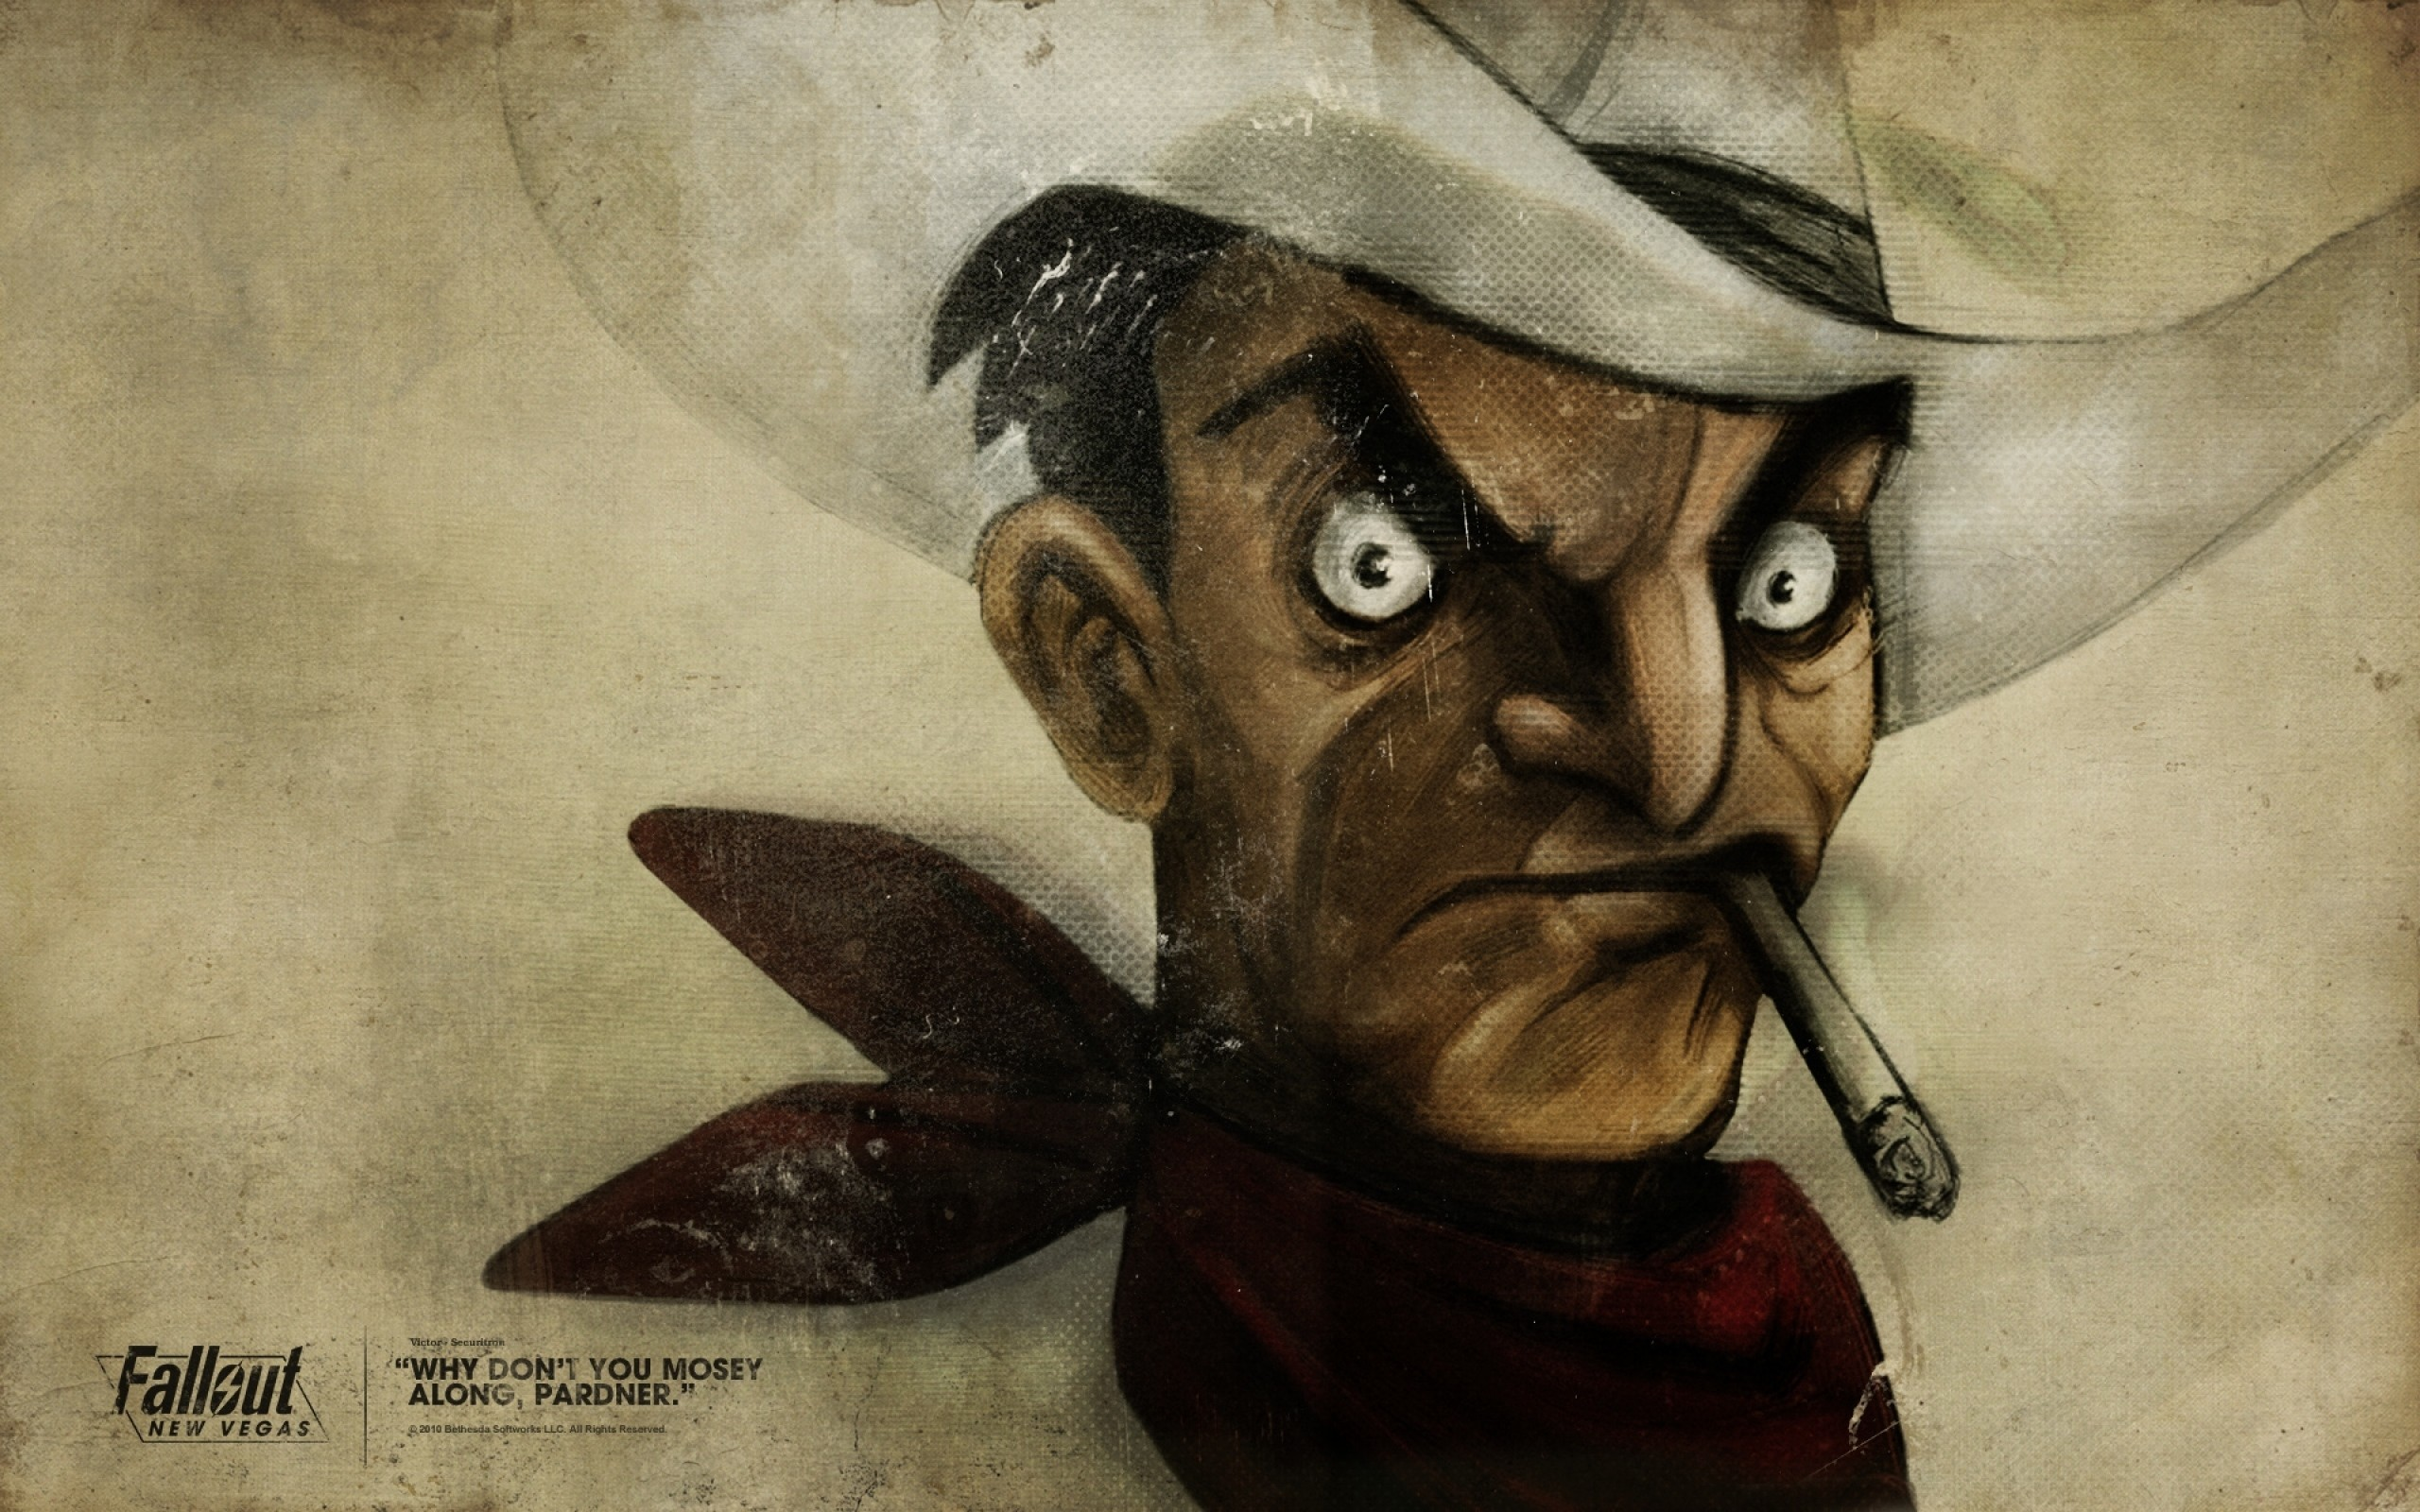 Preview wallpaper fallout, quote, cowboy, cigar, face 2560×1600